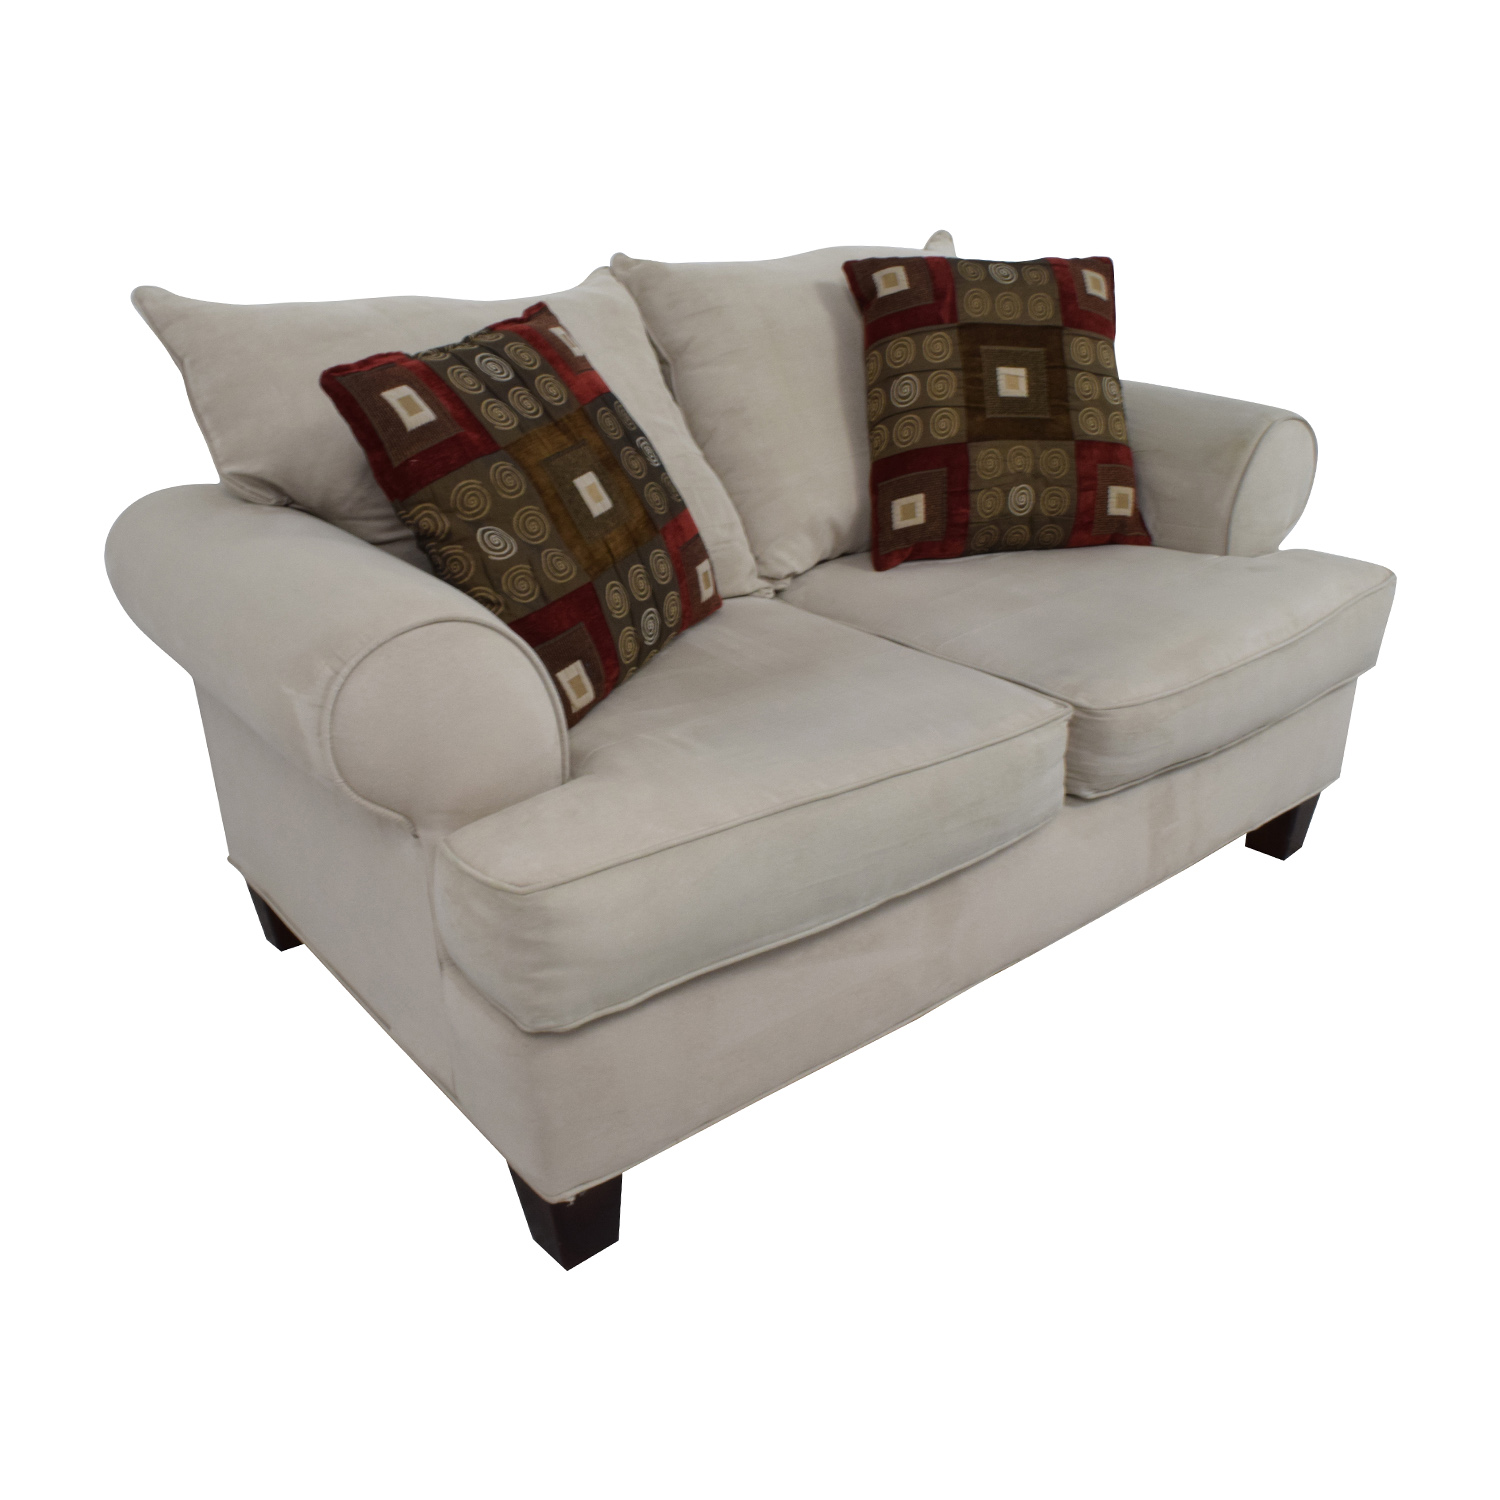 Bobs Discount Furniture Cream Love Seat / Sofas